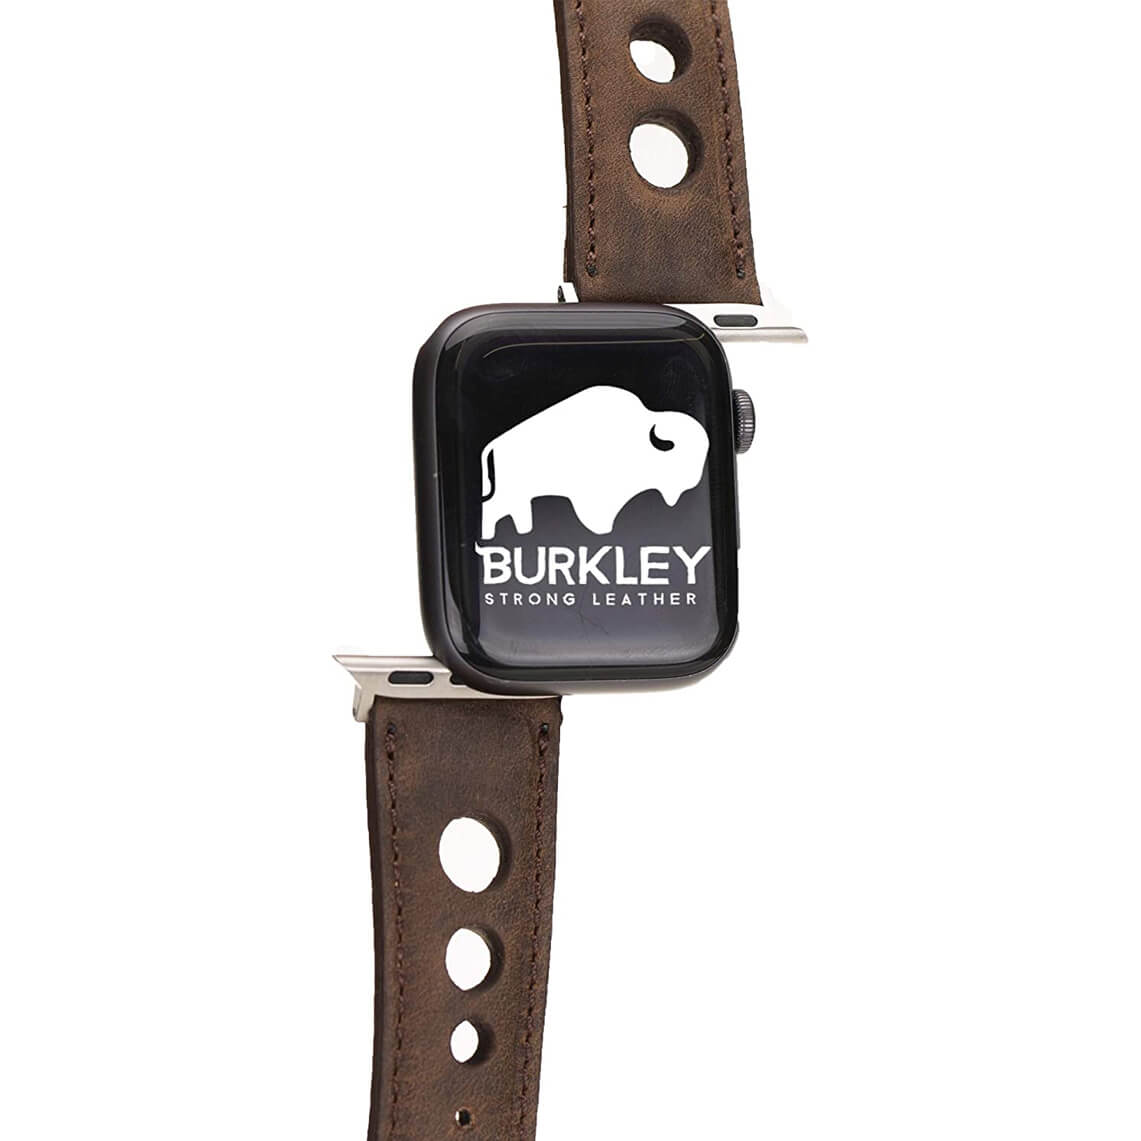 Burkley Genuine Leather Padded Watch Band